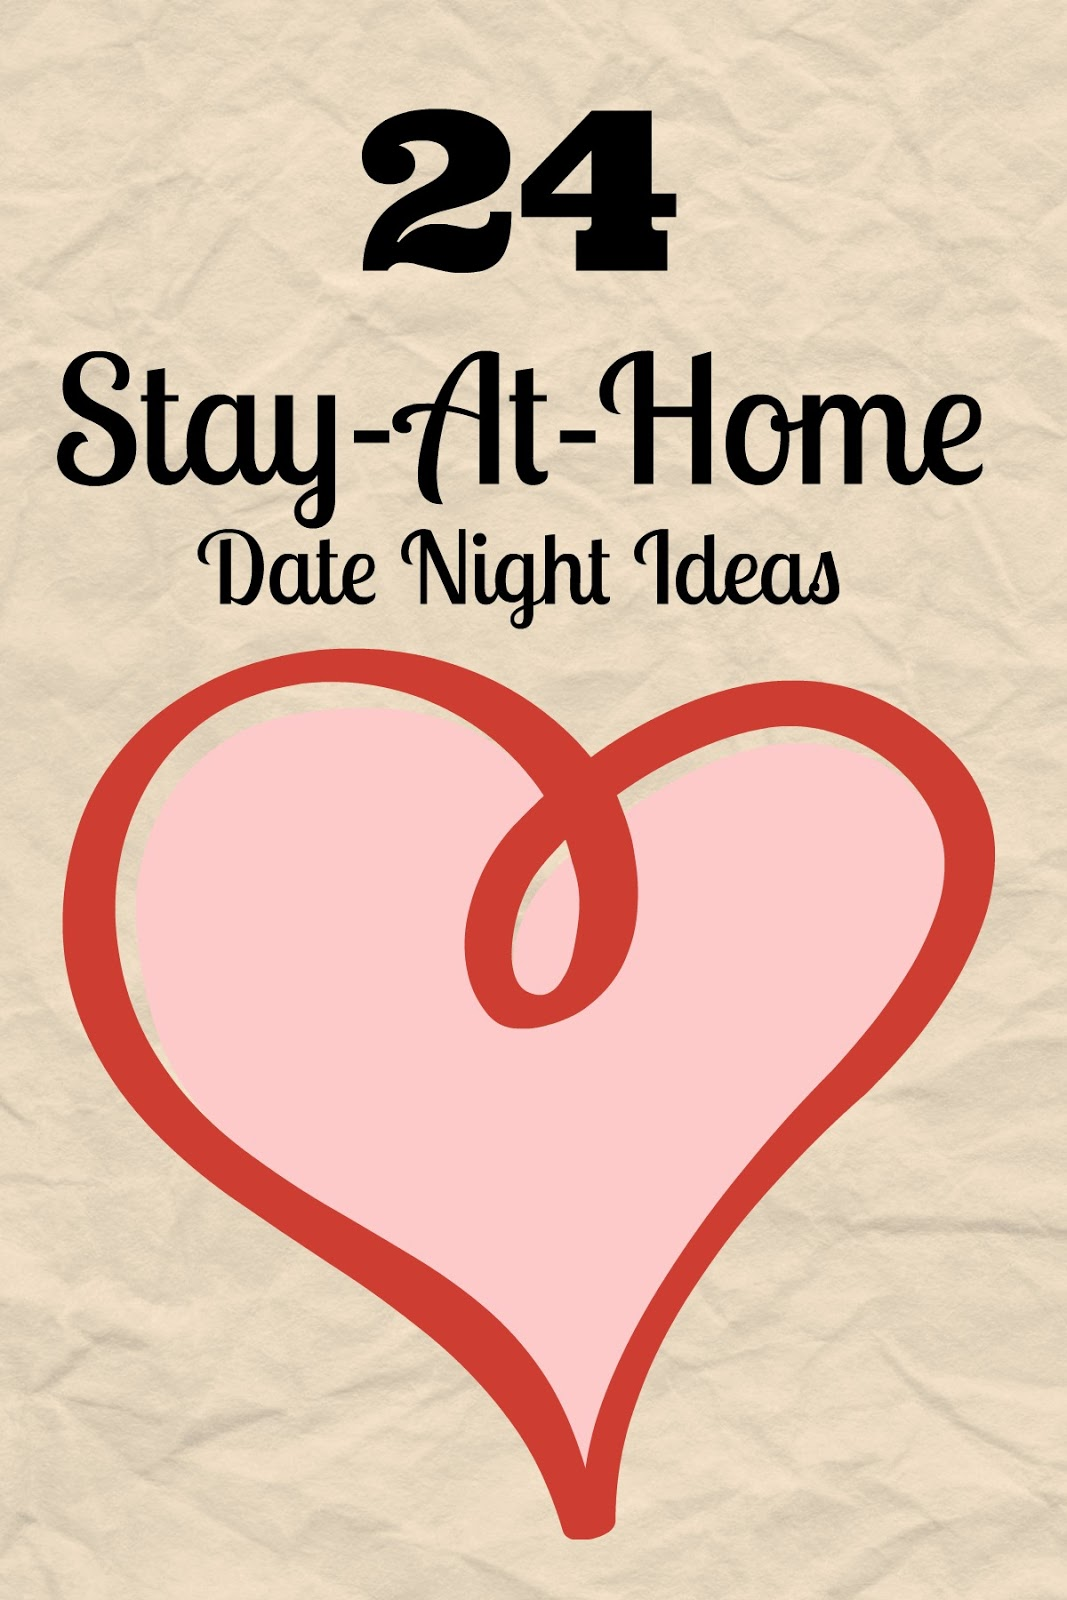 A year of stay-at-home date night ideas